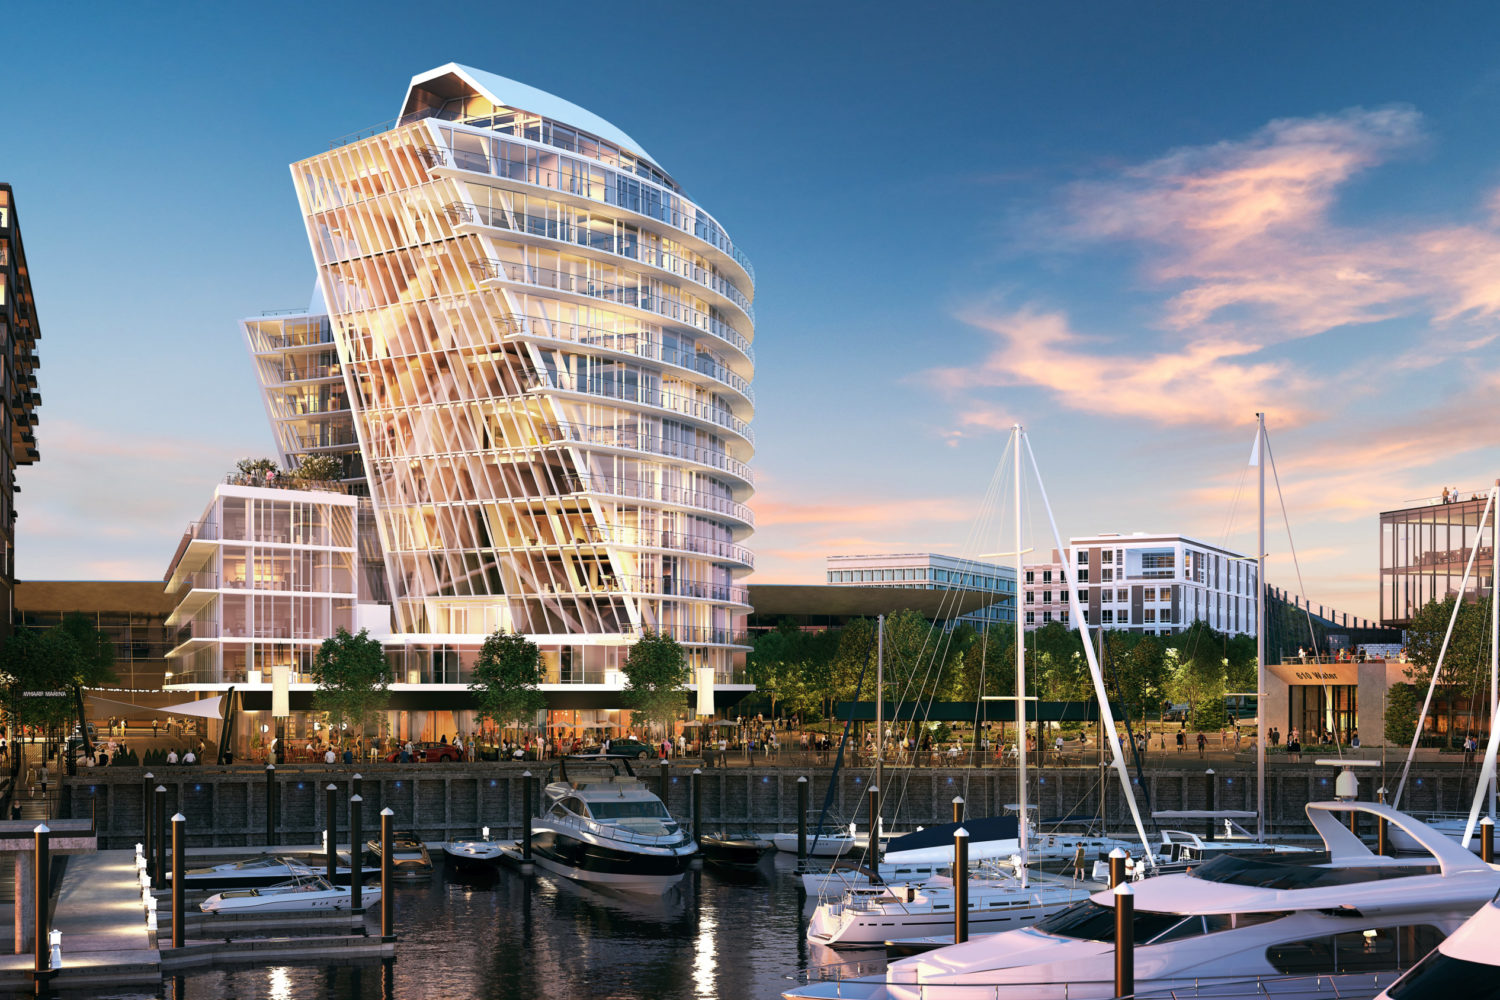 Sales Gallery for Amaris is Now Open: Explore the Newest Condominiums Coming to The Wharf